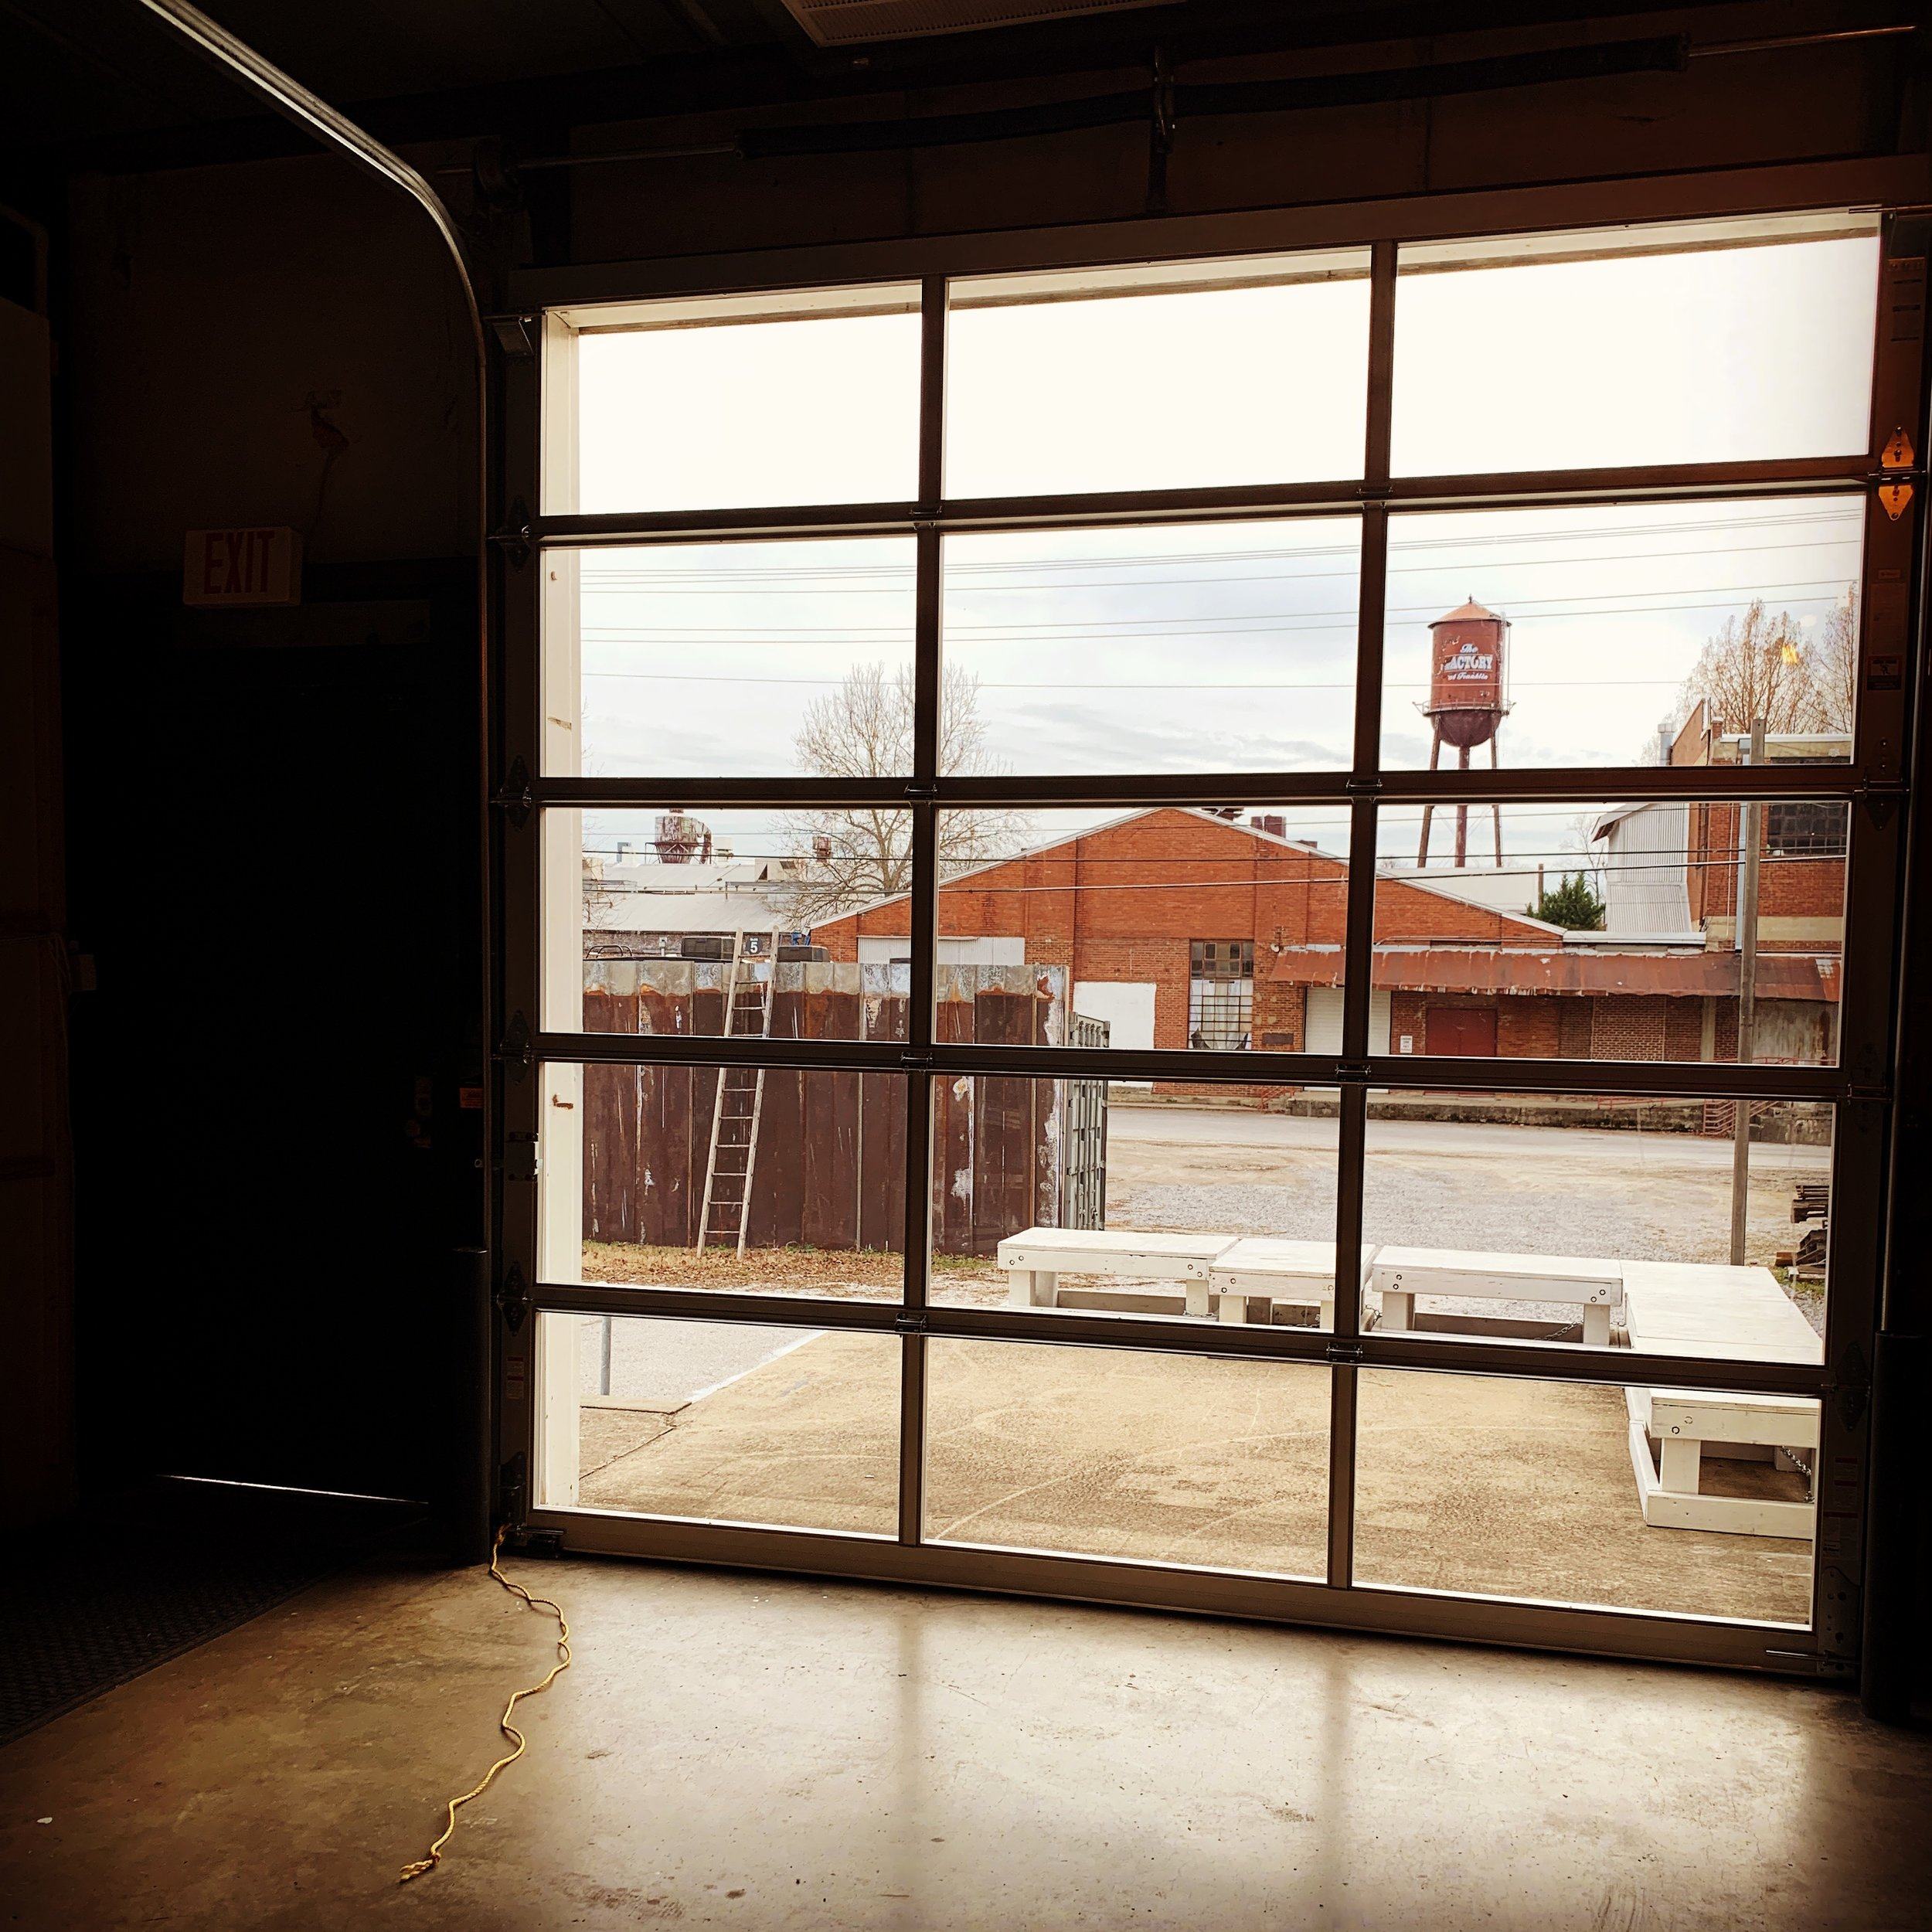 Dec 19 2018 - Westlight Studios gets a new glass garage door in Studio A